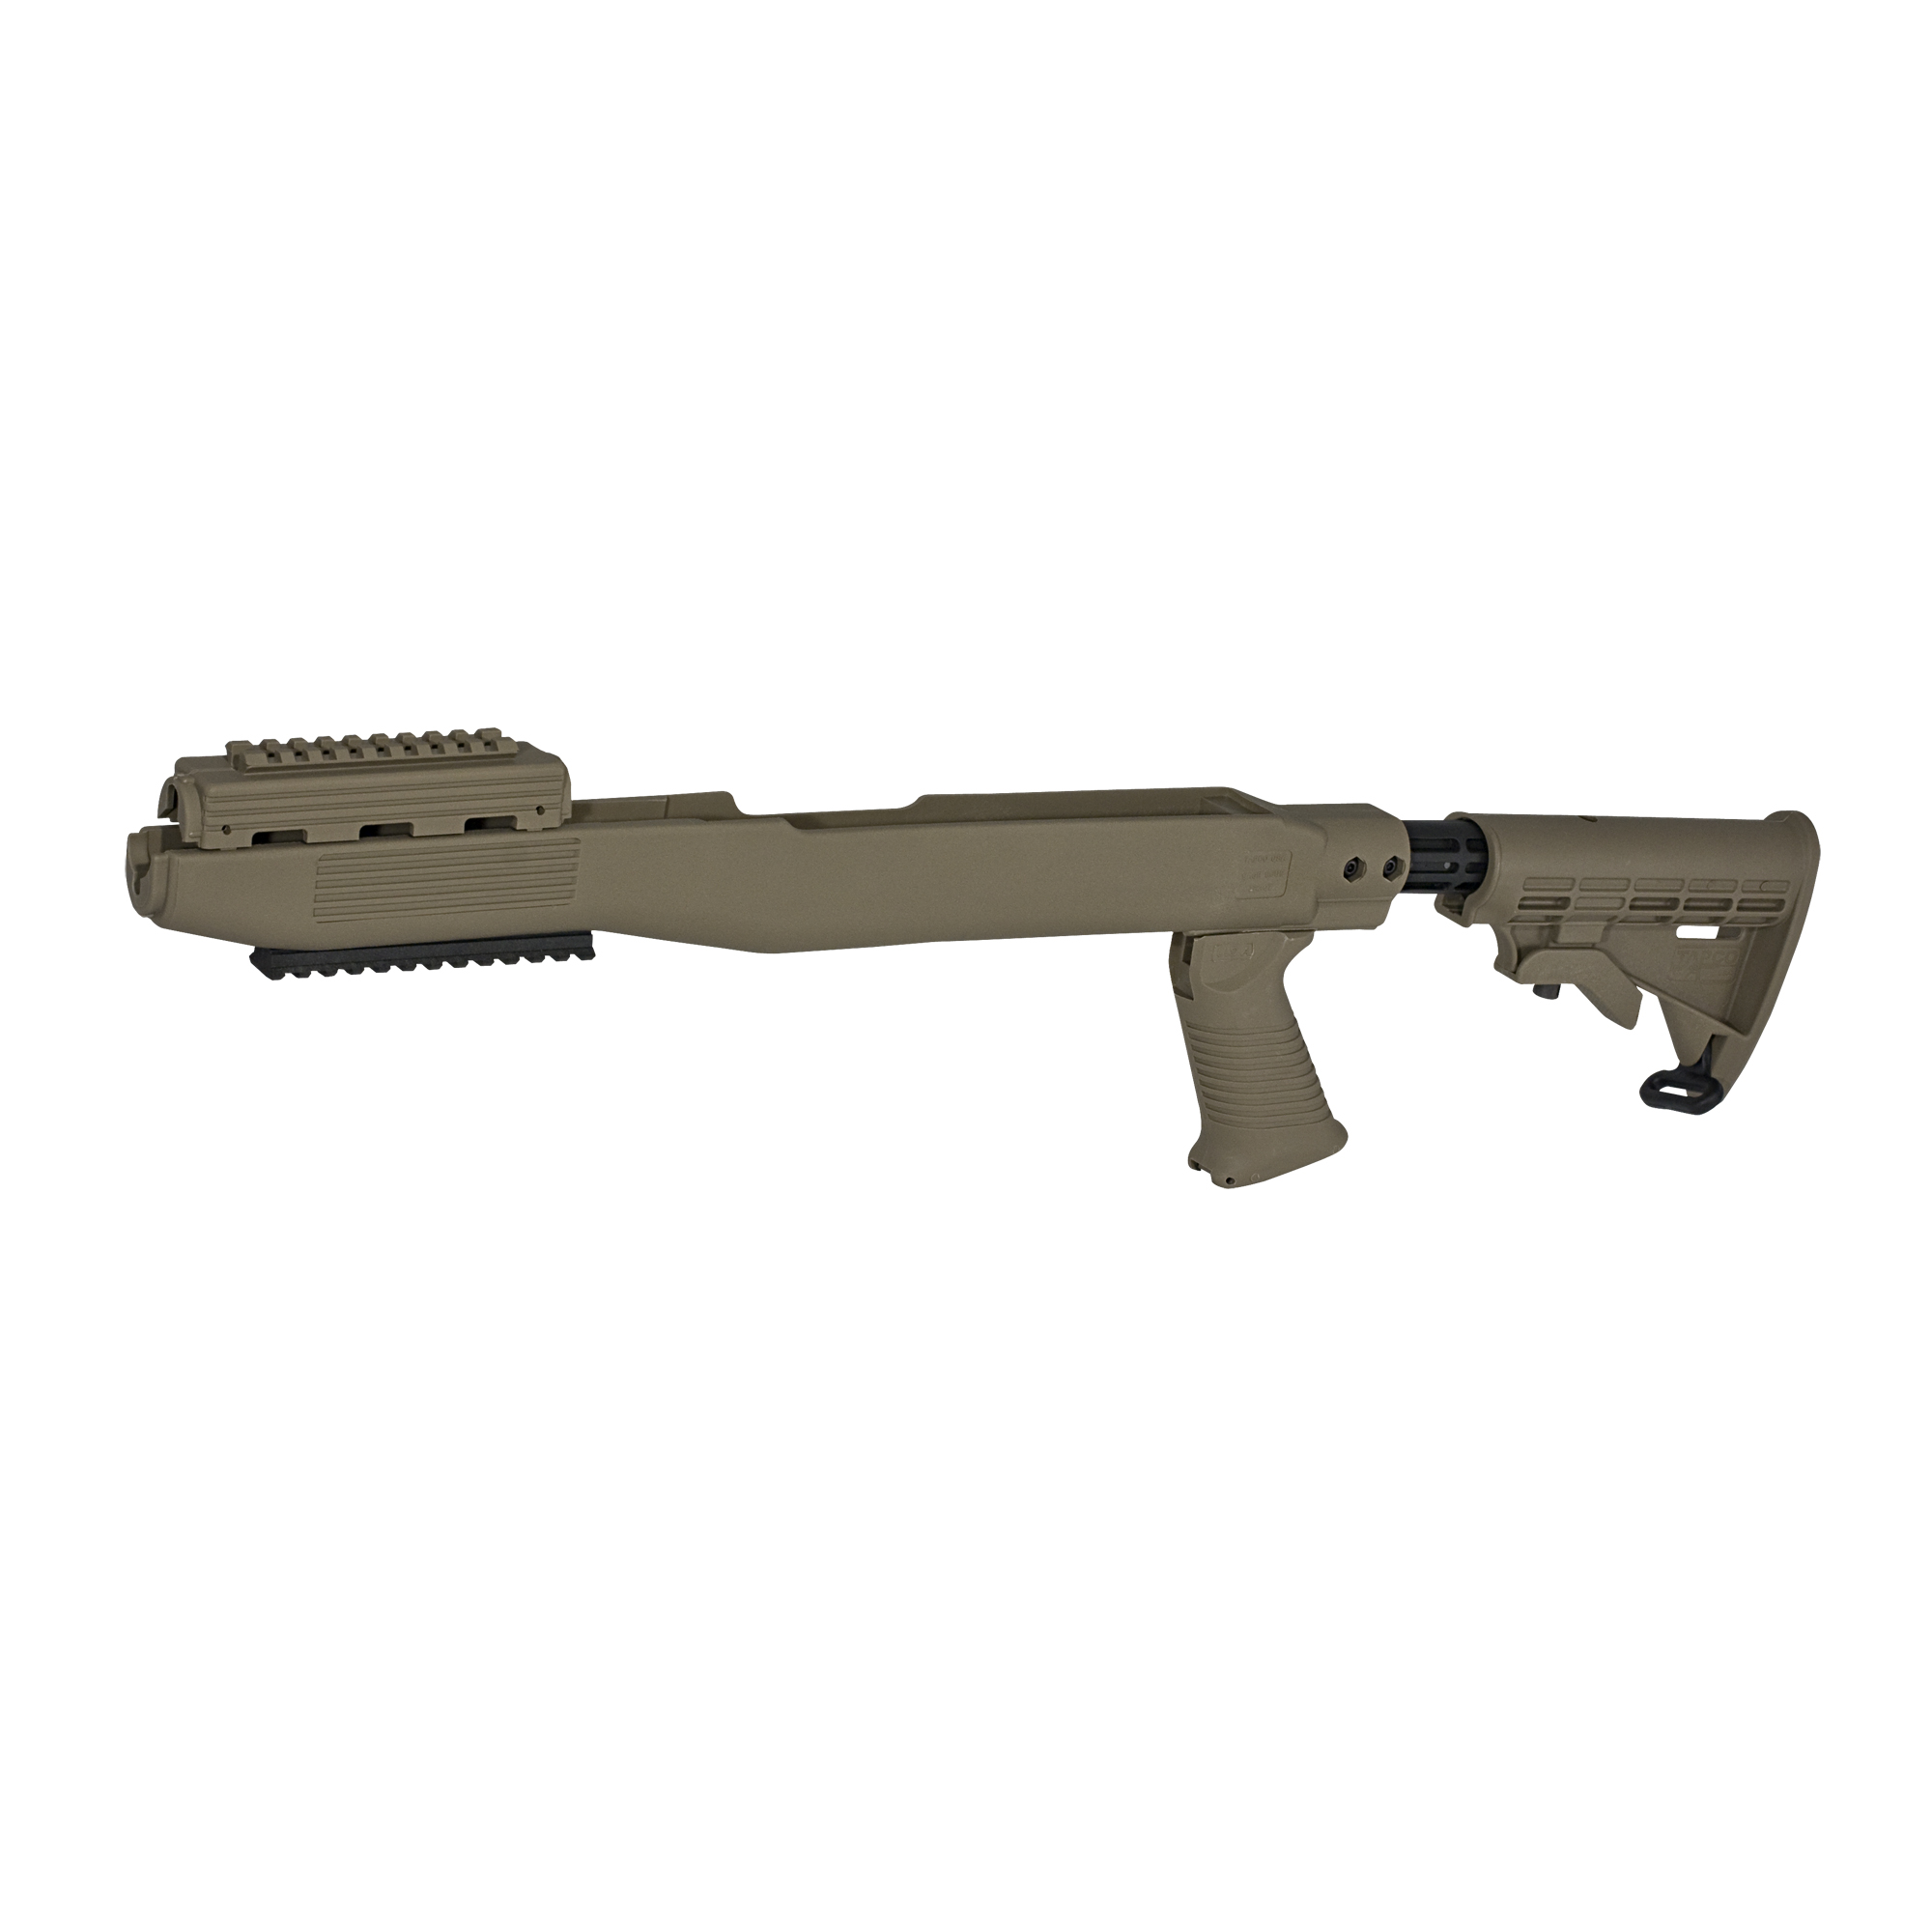 "The INTRAFUSE(R) SKS Stock System. This system gives you a 6 position adjustable T6(TM) stock"" so it will accommodate any sized shooter"" a SAW Style Pistol Grip for greater comfort and control"" and an upper handguard rail for adding accessories. This version also comes with a lower Picatinny rail to add extra accessories. Their stock system works on most SKS models and is made of the highest strength composite. So"" if you're ready to leave your original wooden stock in a museum somewhere and transform your SKS into a 21st century tactical firearm"" purchase the INTRAFUSE(R) SKS Stock System today."